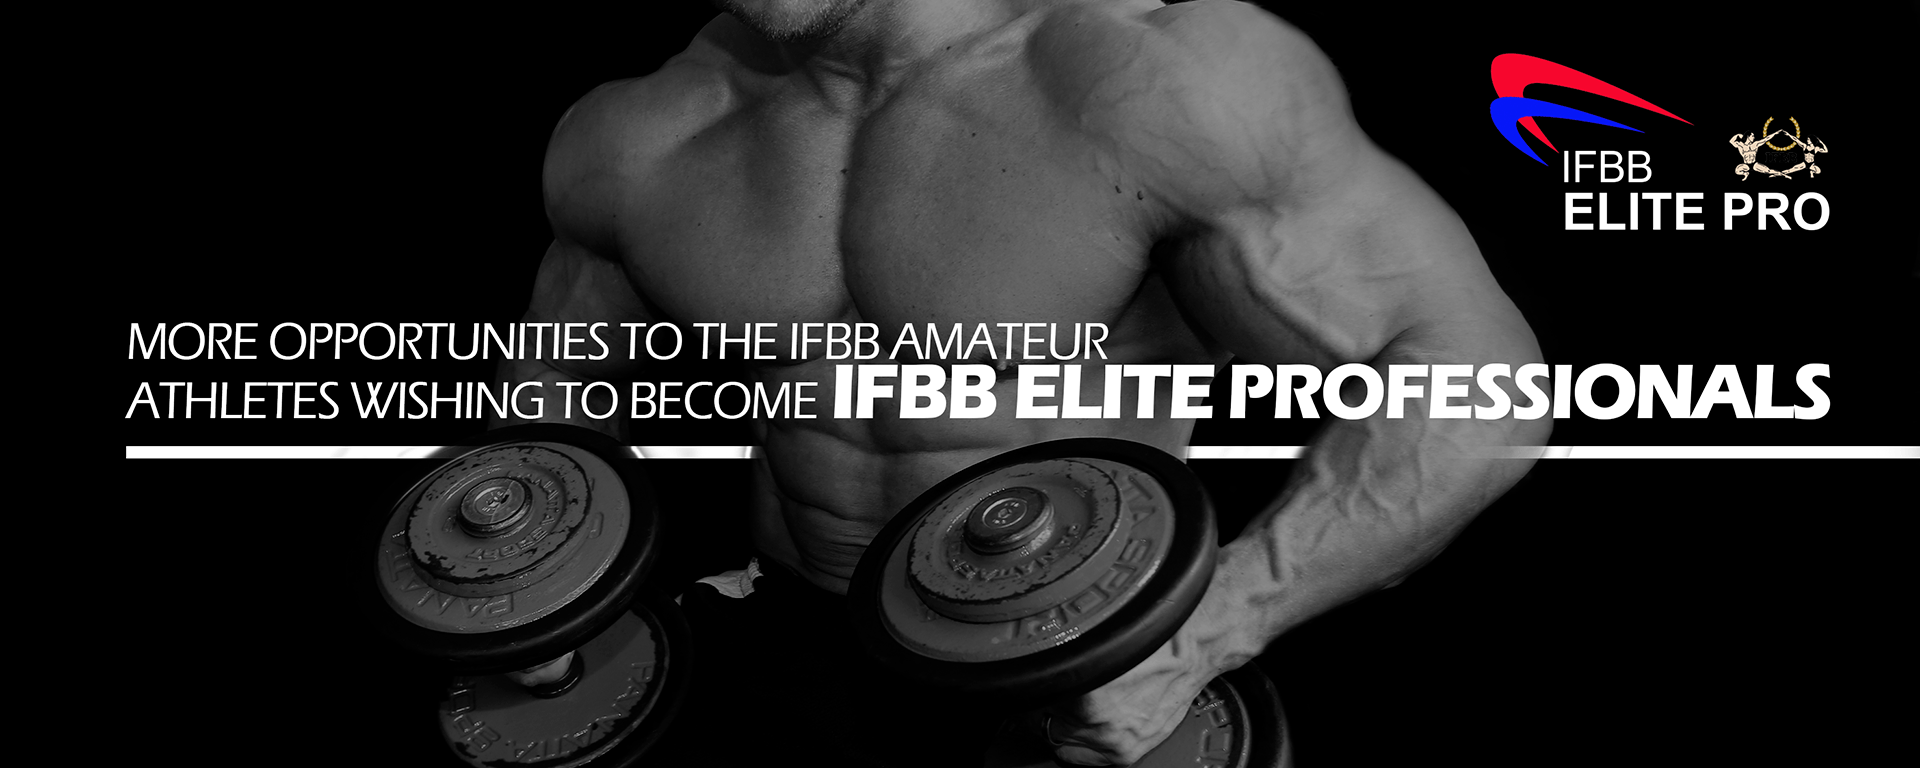 IFBB Elite Pro Card - IFBB Elite Athlete